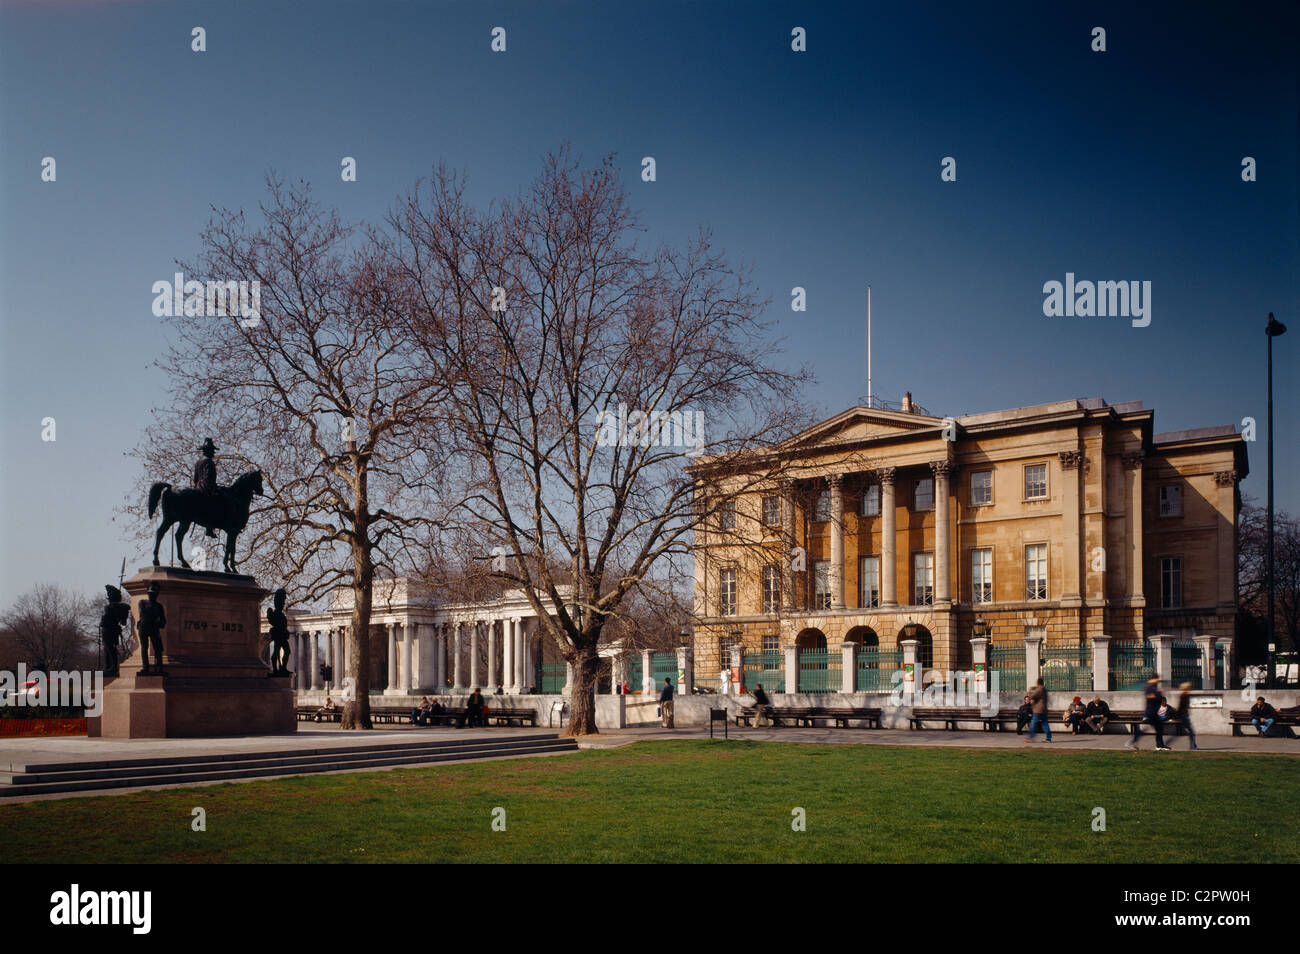 Apsley House. Exterior view from the South East with the Wellington statue to left and the Hyde Park Screen beyond. - Stock Image